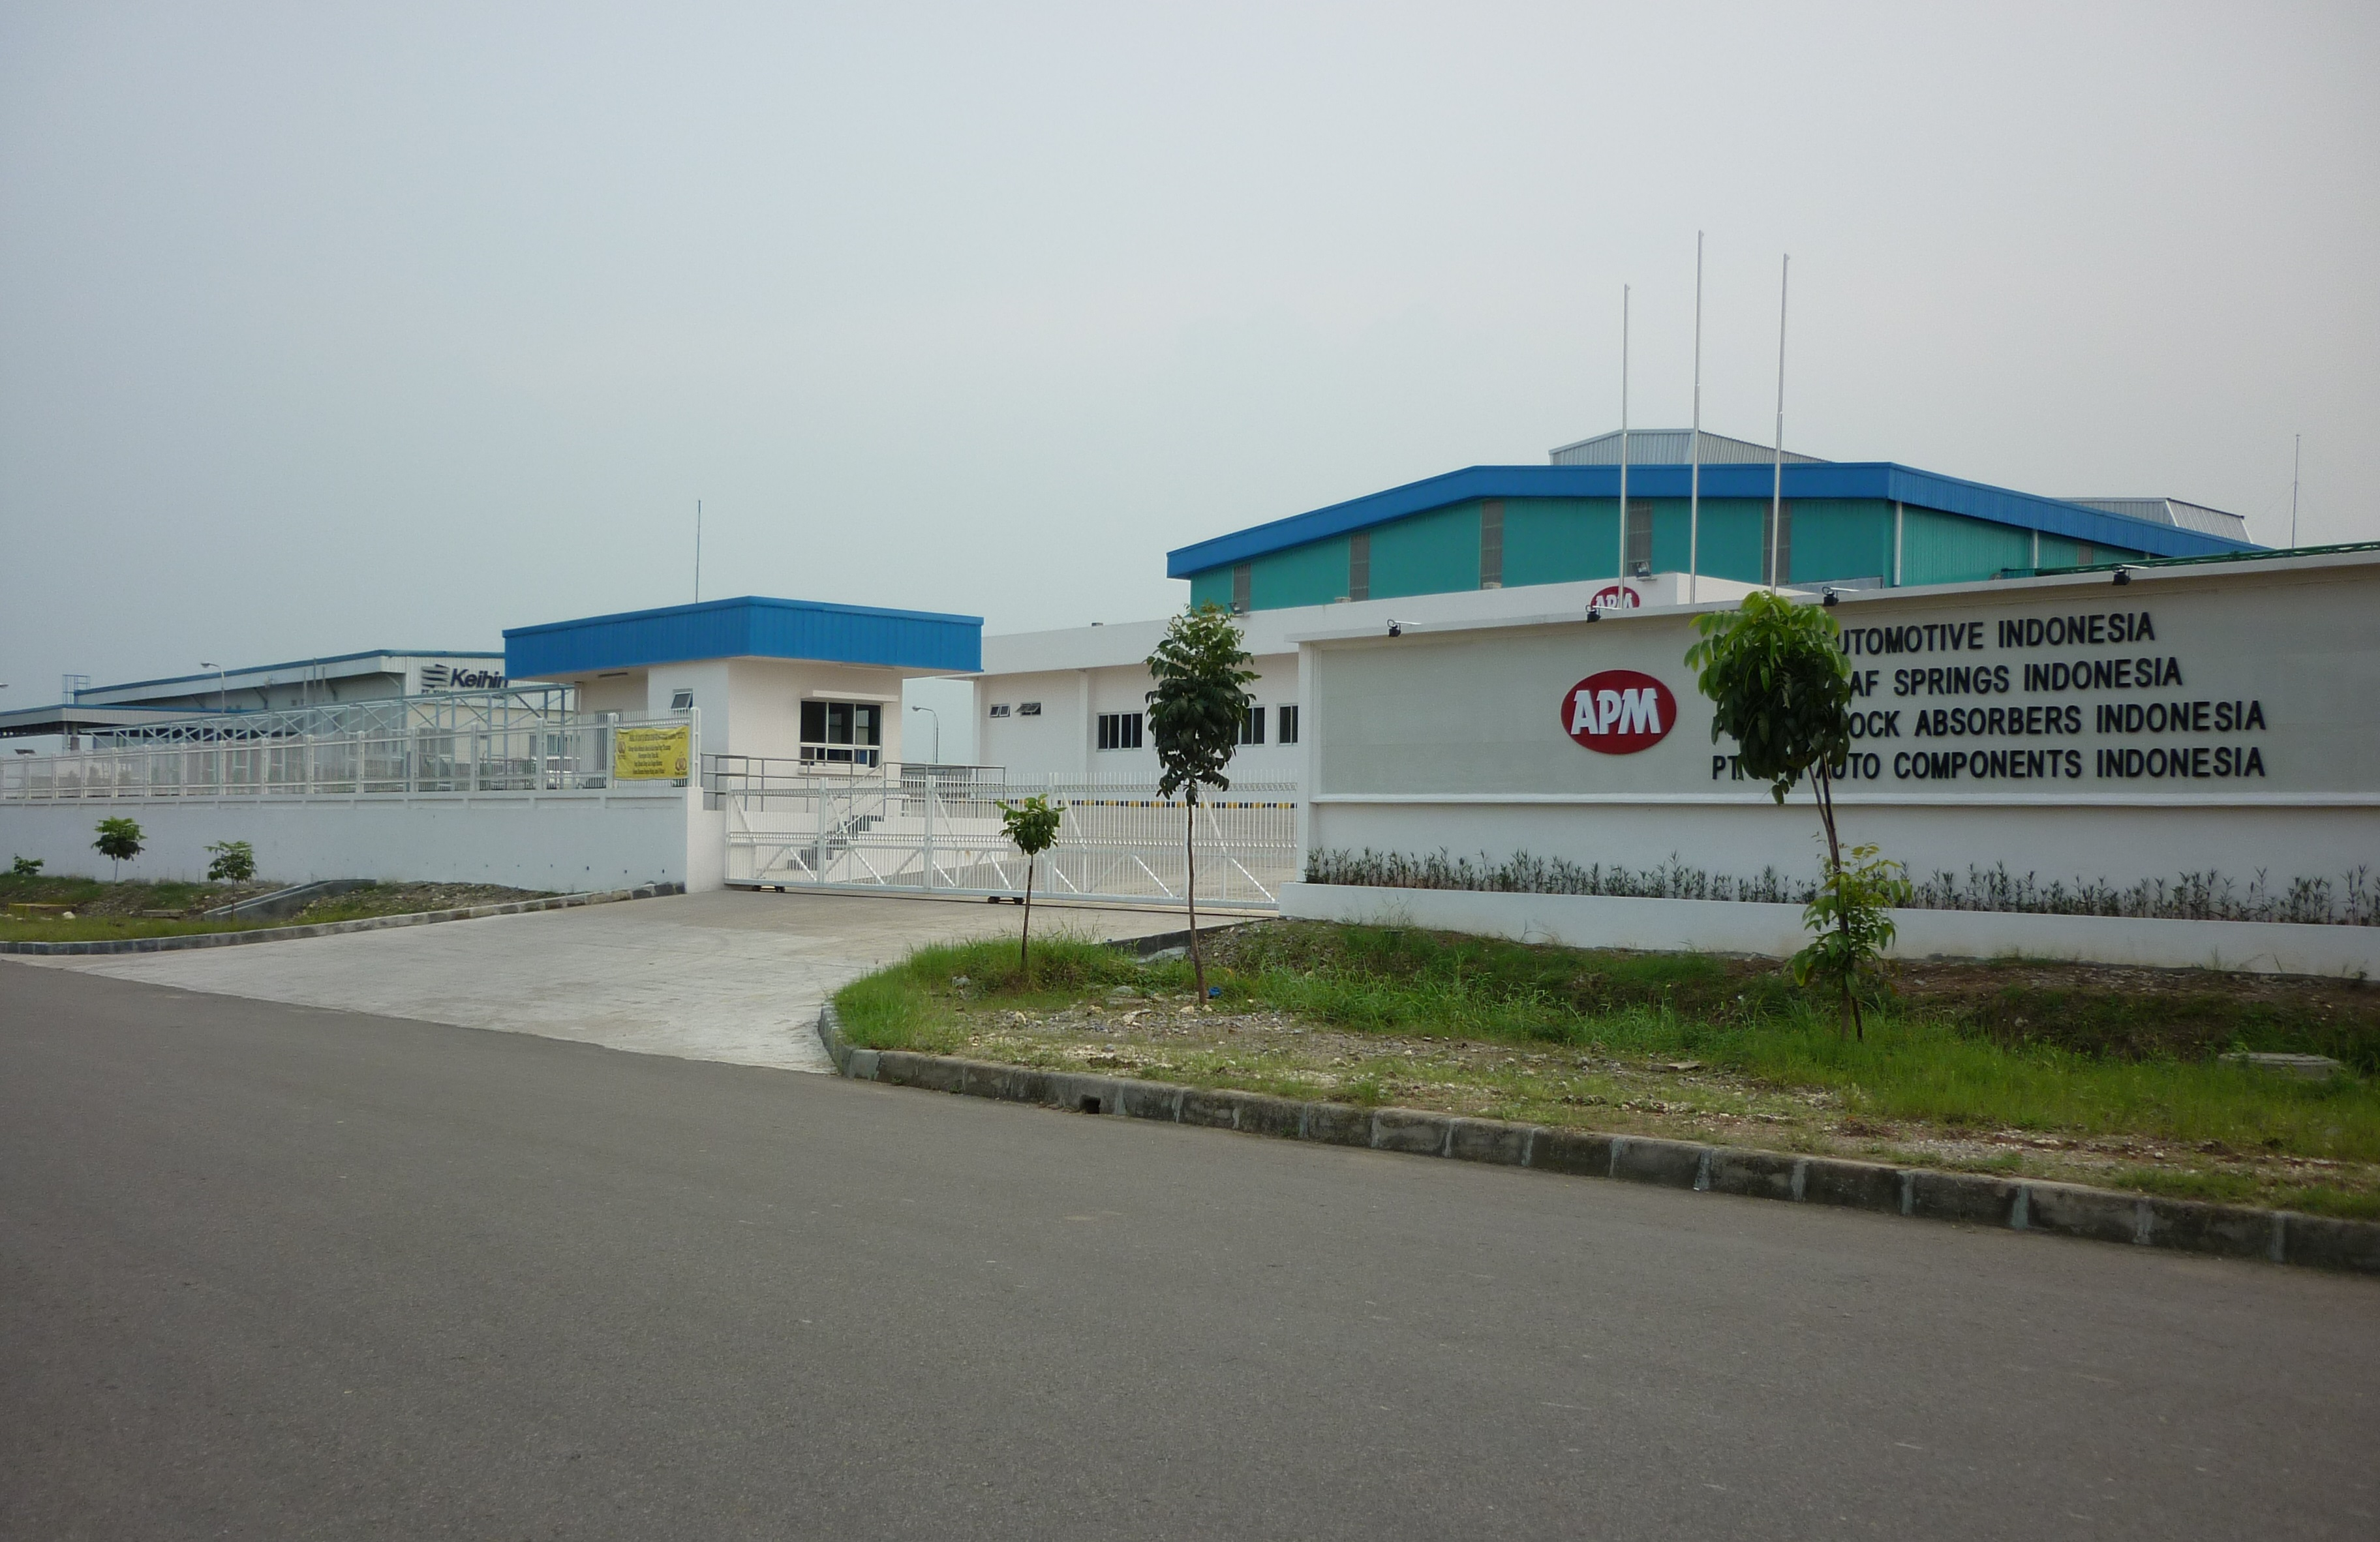 APM Automotive Indonesia PT